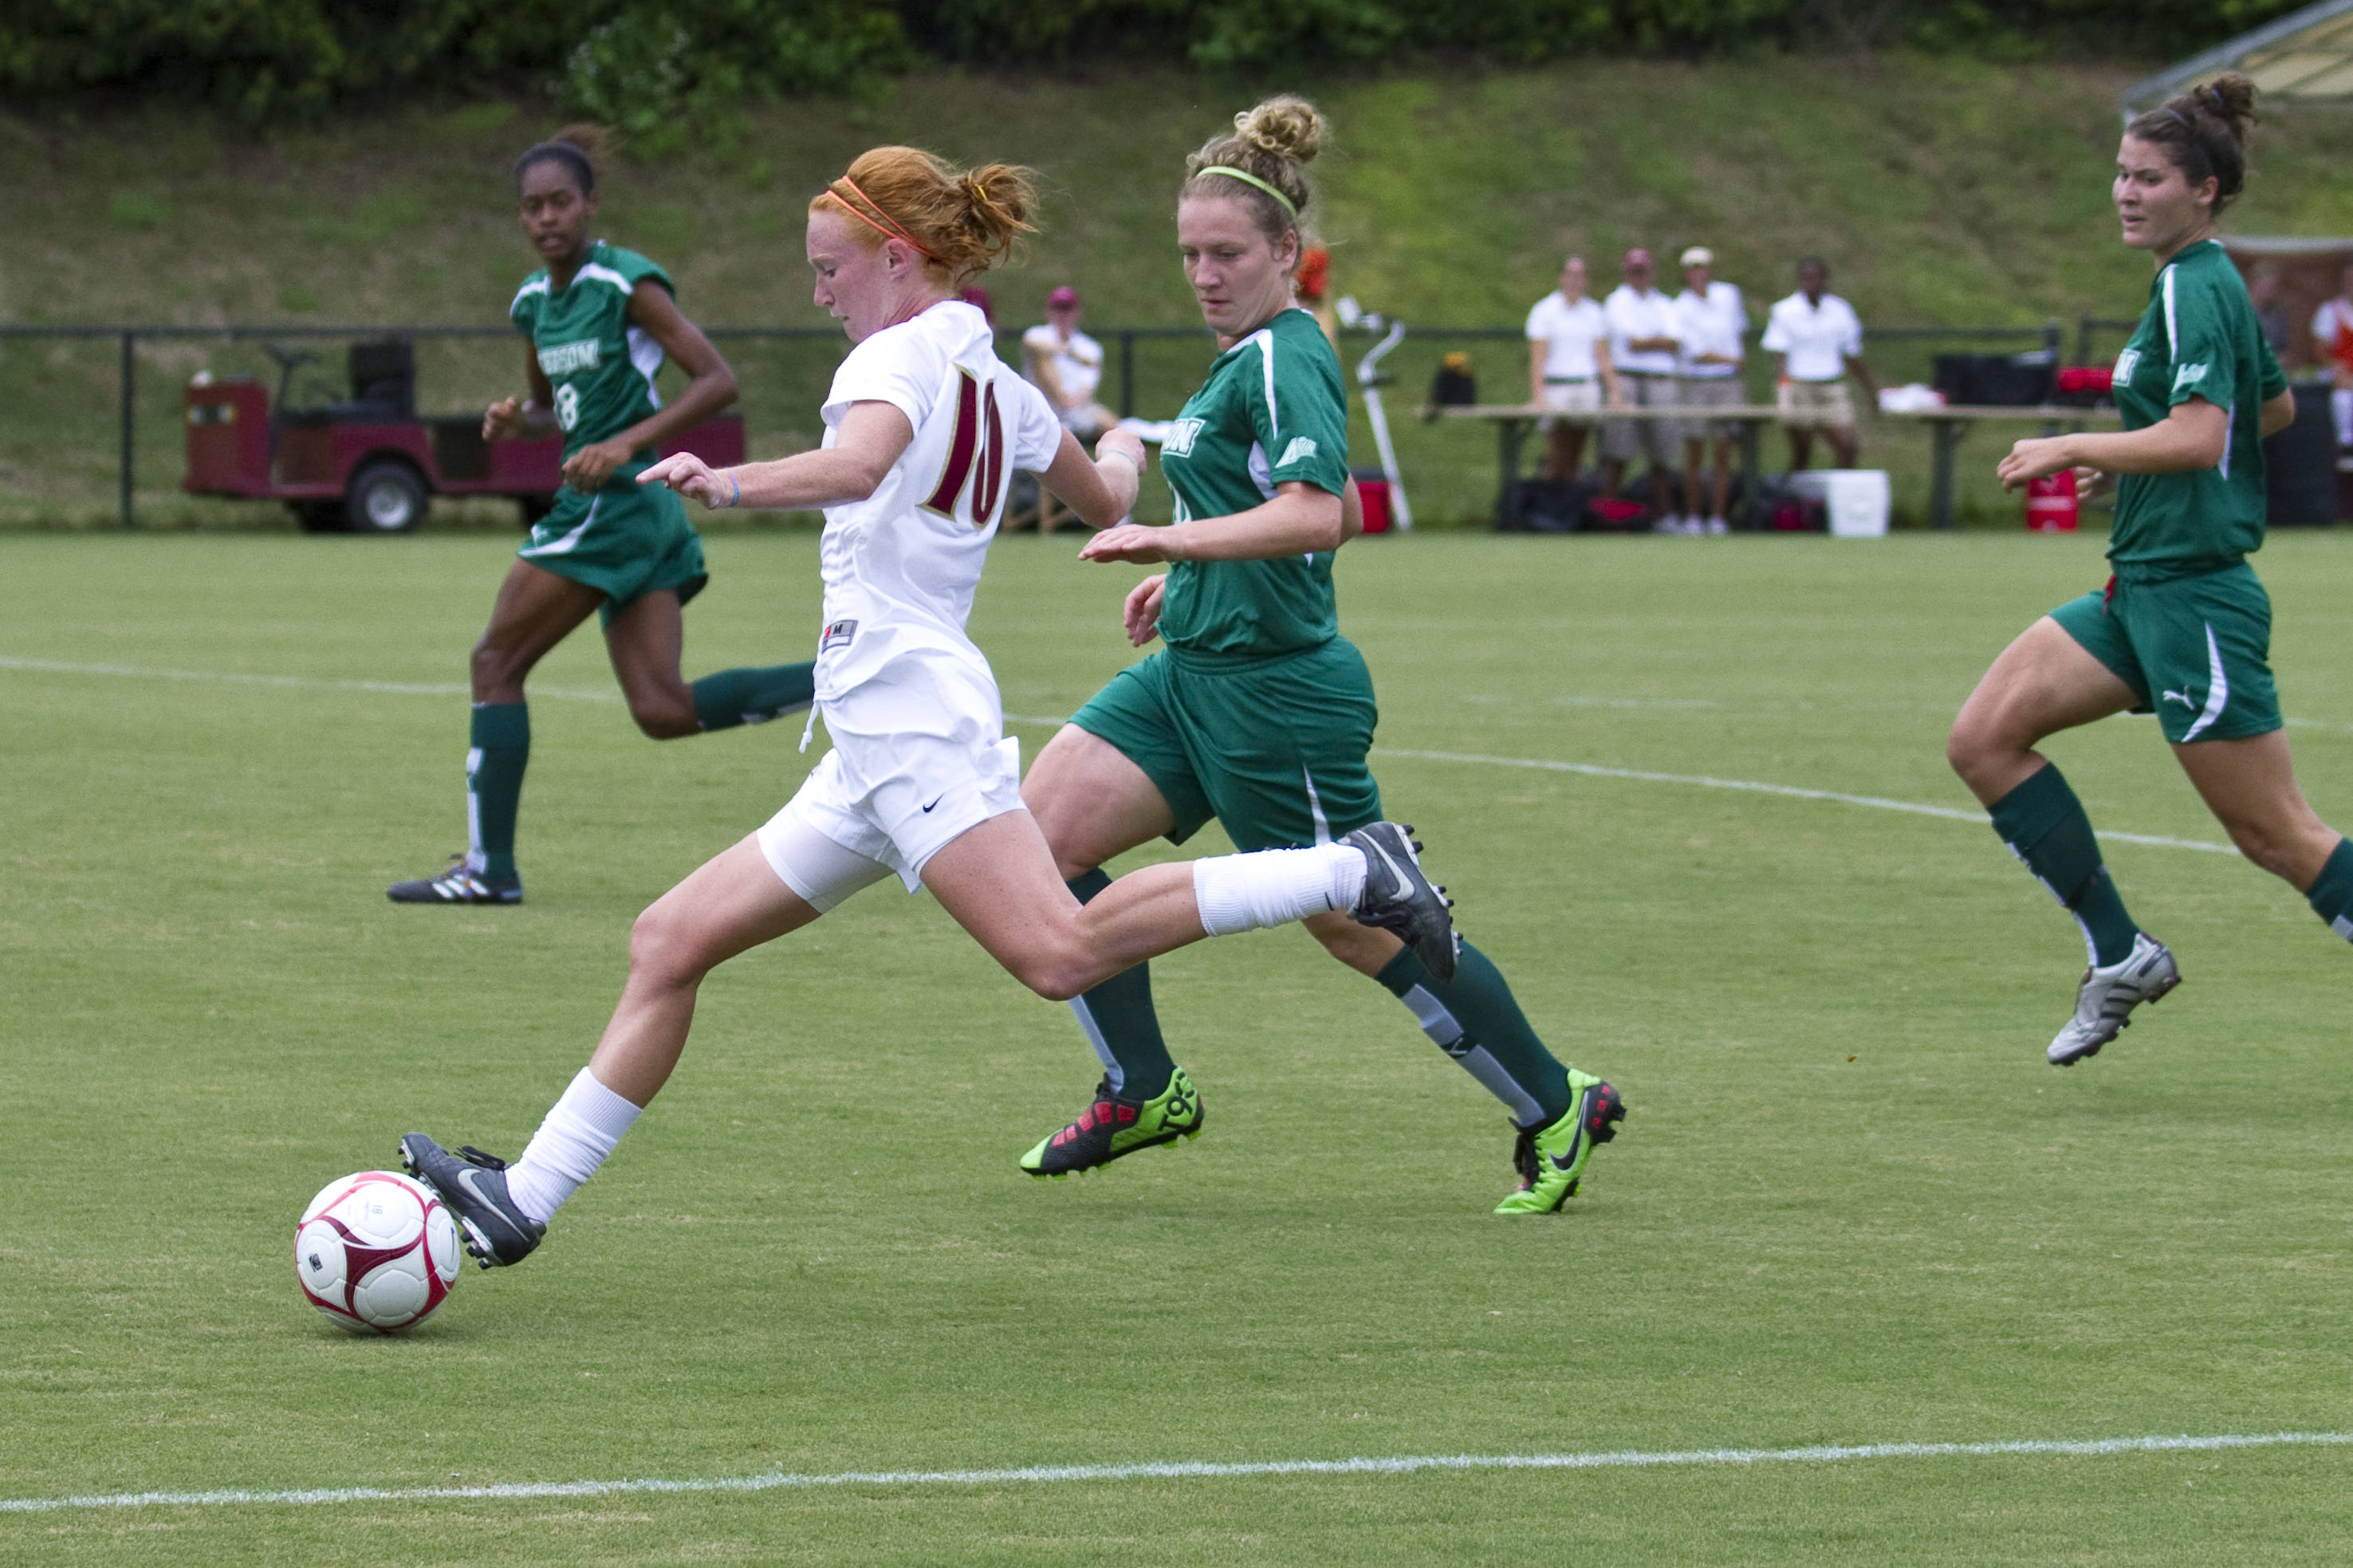 Tori Huster (10) carries the ball down the sideline against Stetson, setting up the play which led to the Seminoles' first goal.